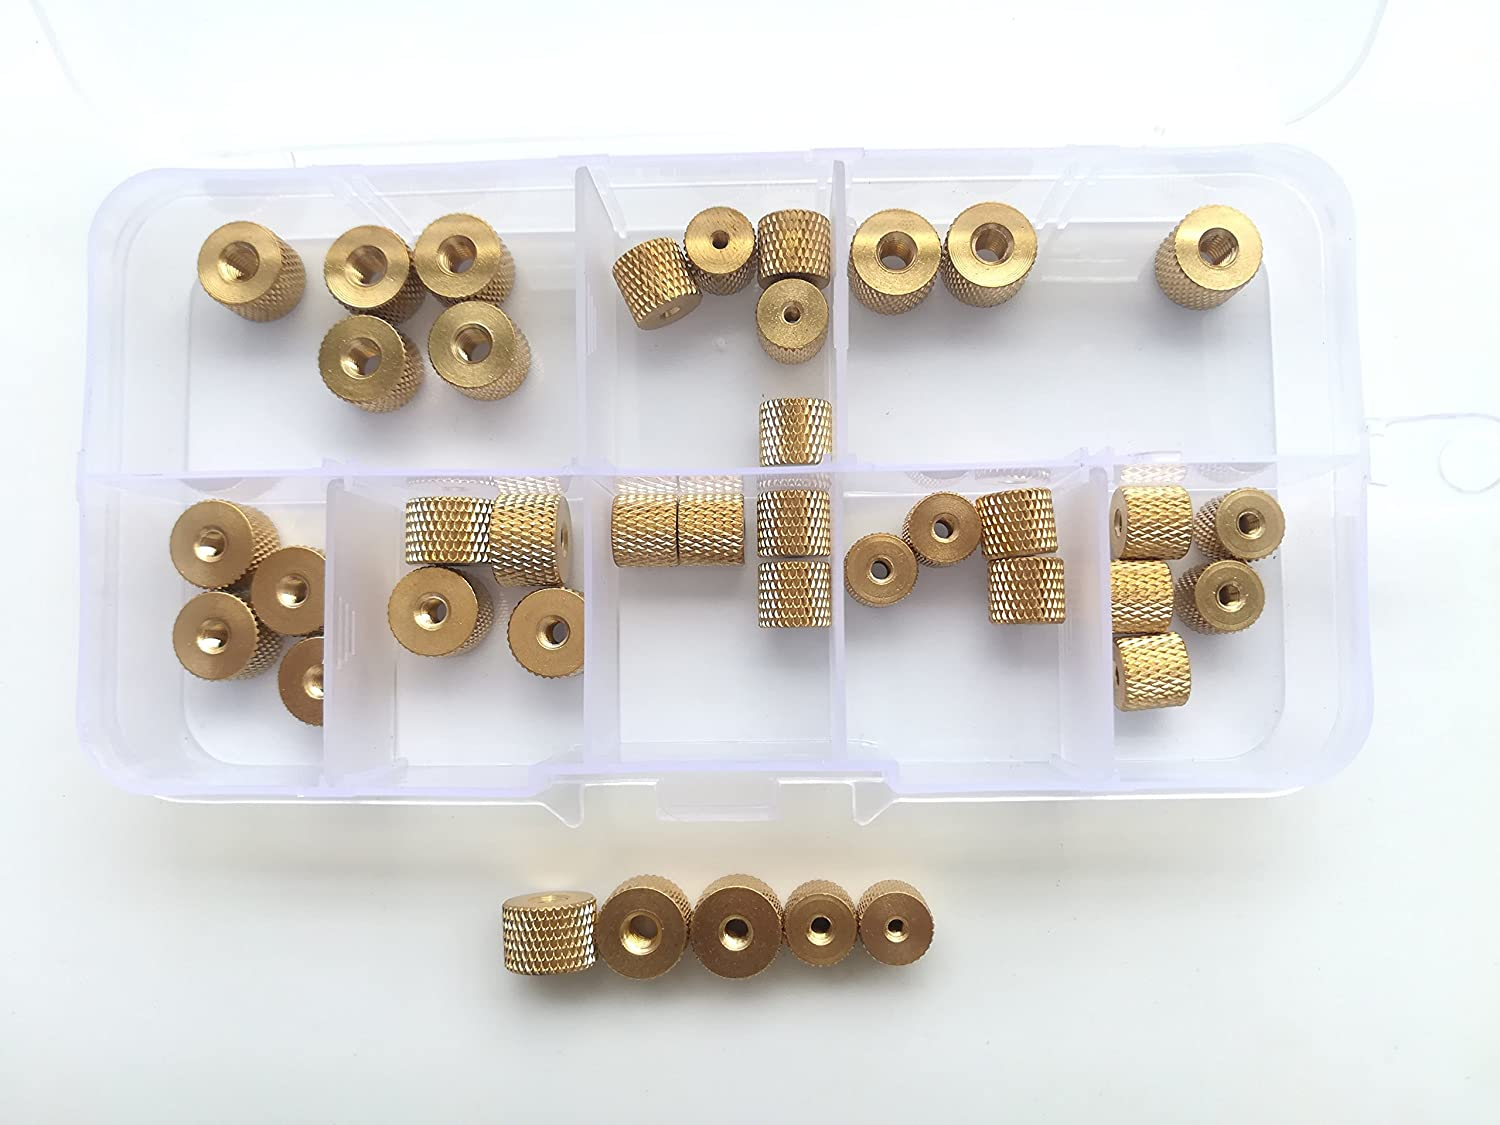 40pcs M2 M2.5 M3 M4 Brass Pineapple Thread Nuts Hand Twist Tighten nut Water Cooling Model Modification Sleeves